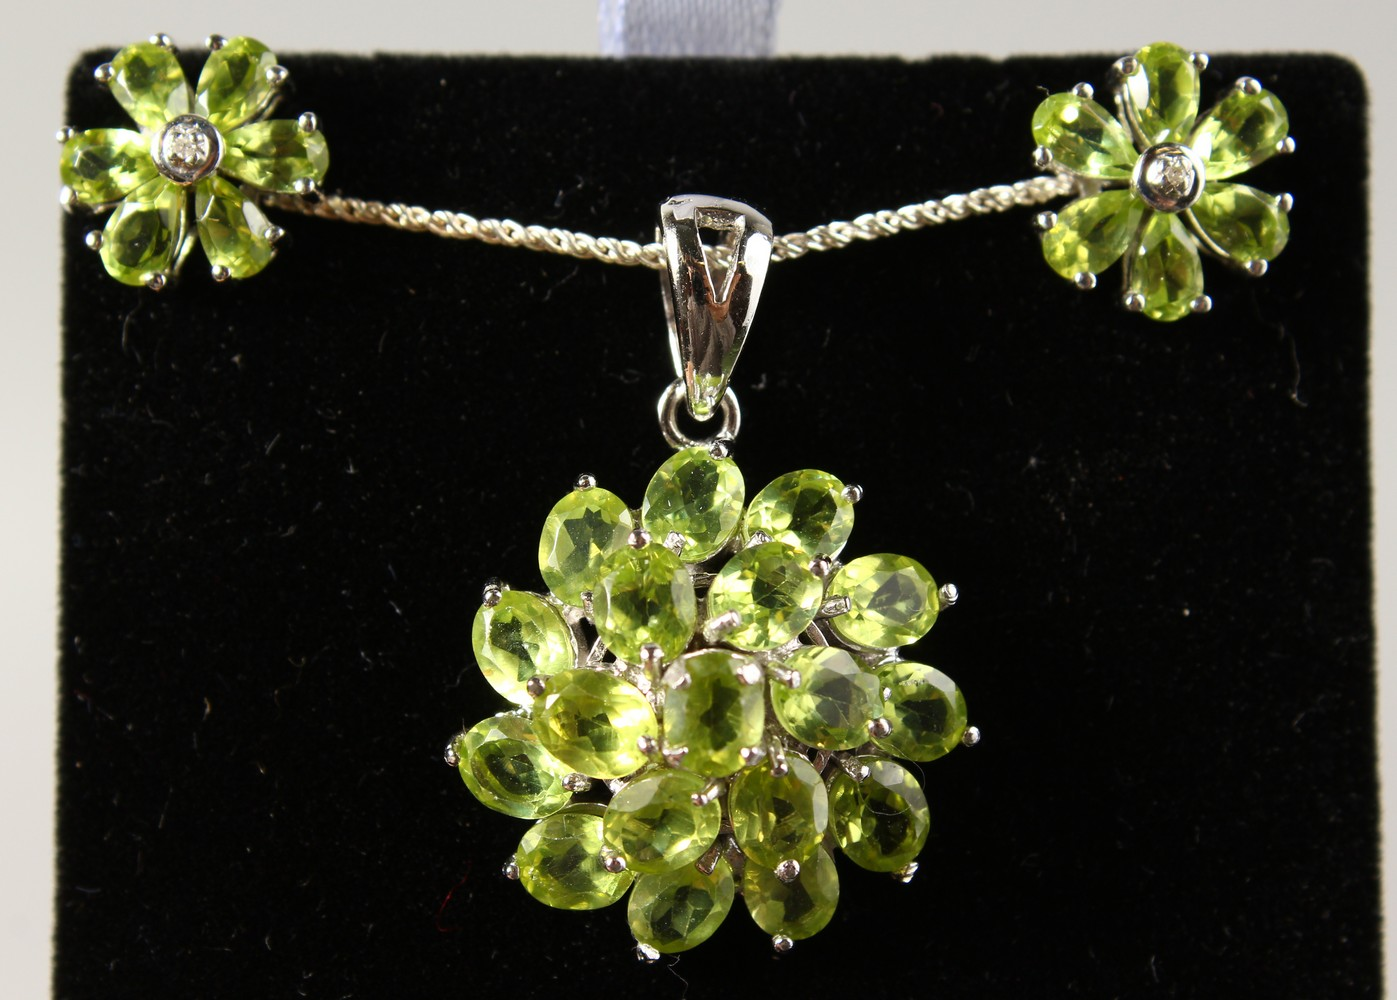 Lot 1784 - A SILVER PERIDOT SET PENDANT, on chain, and EAR STUDS.